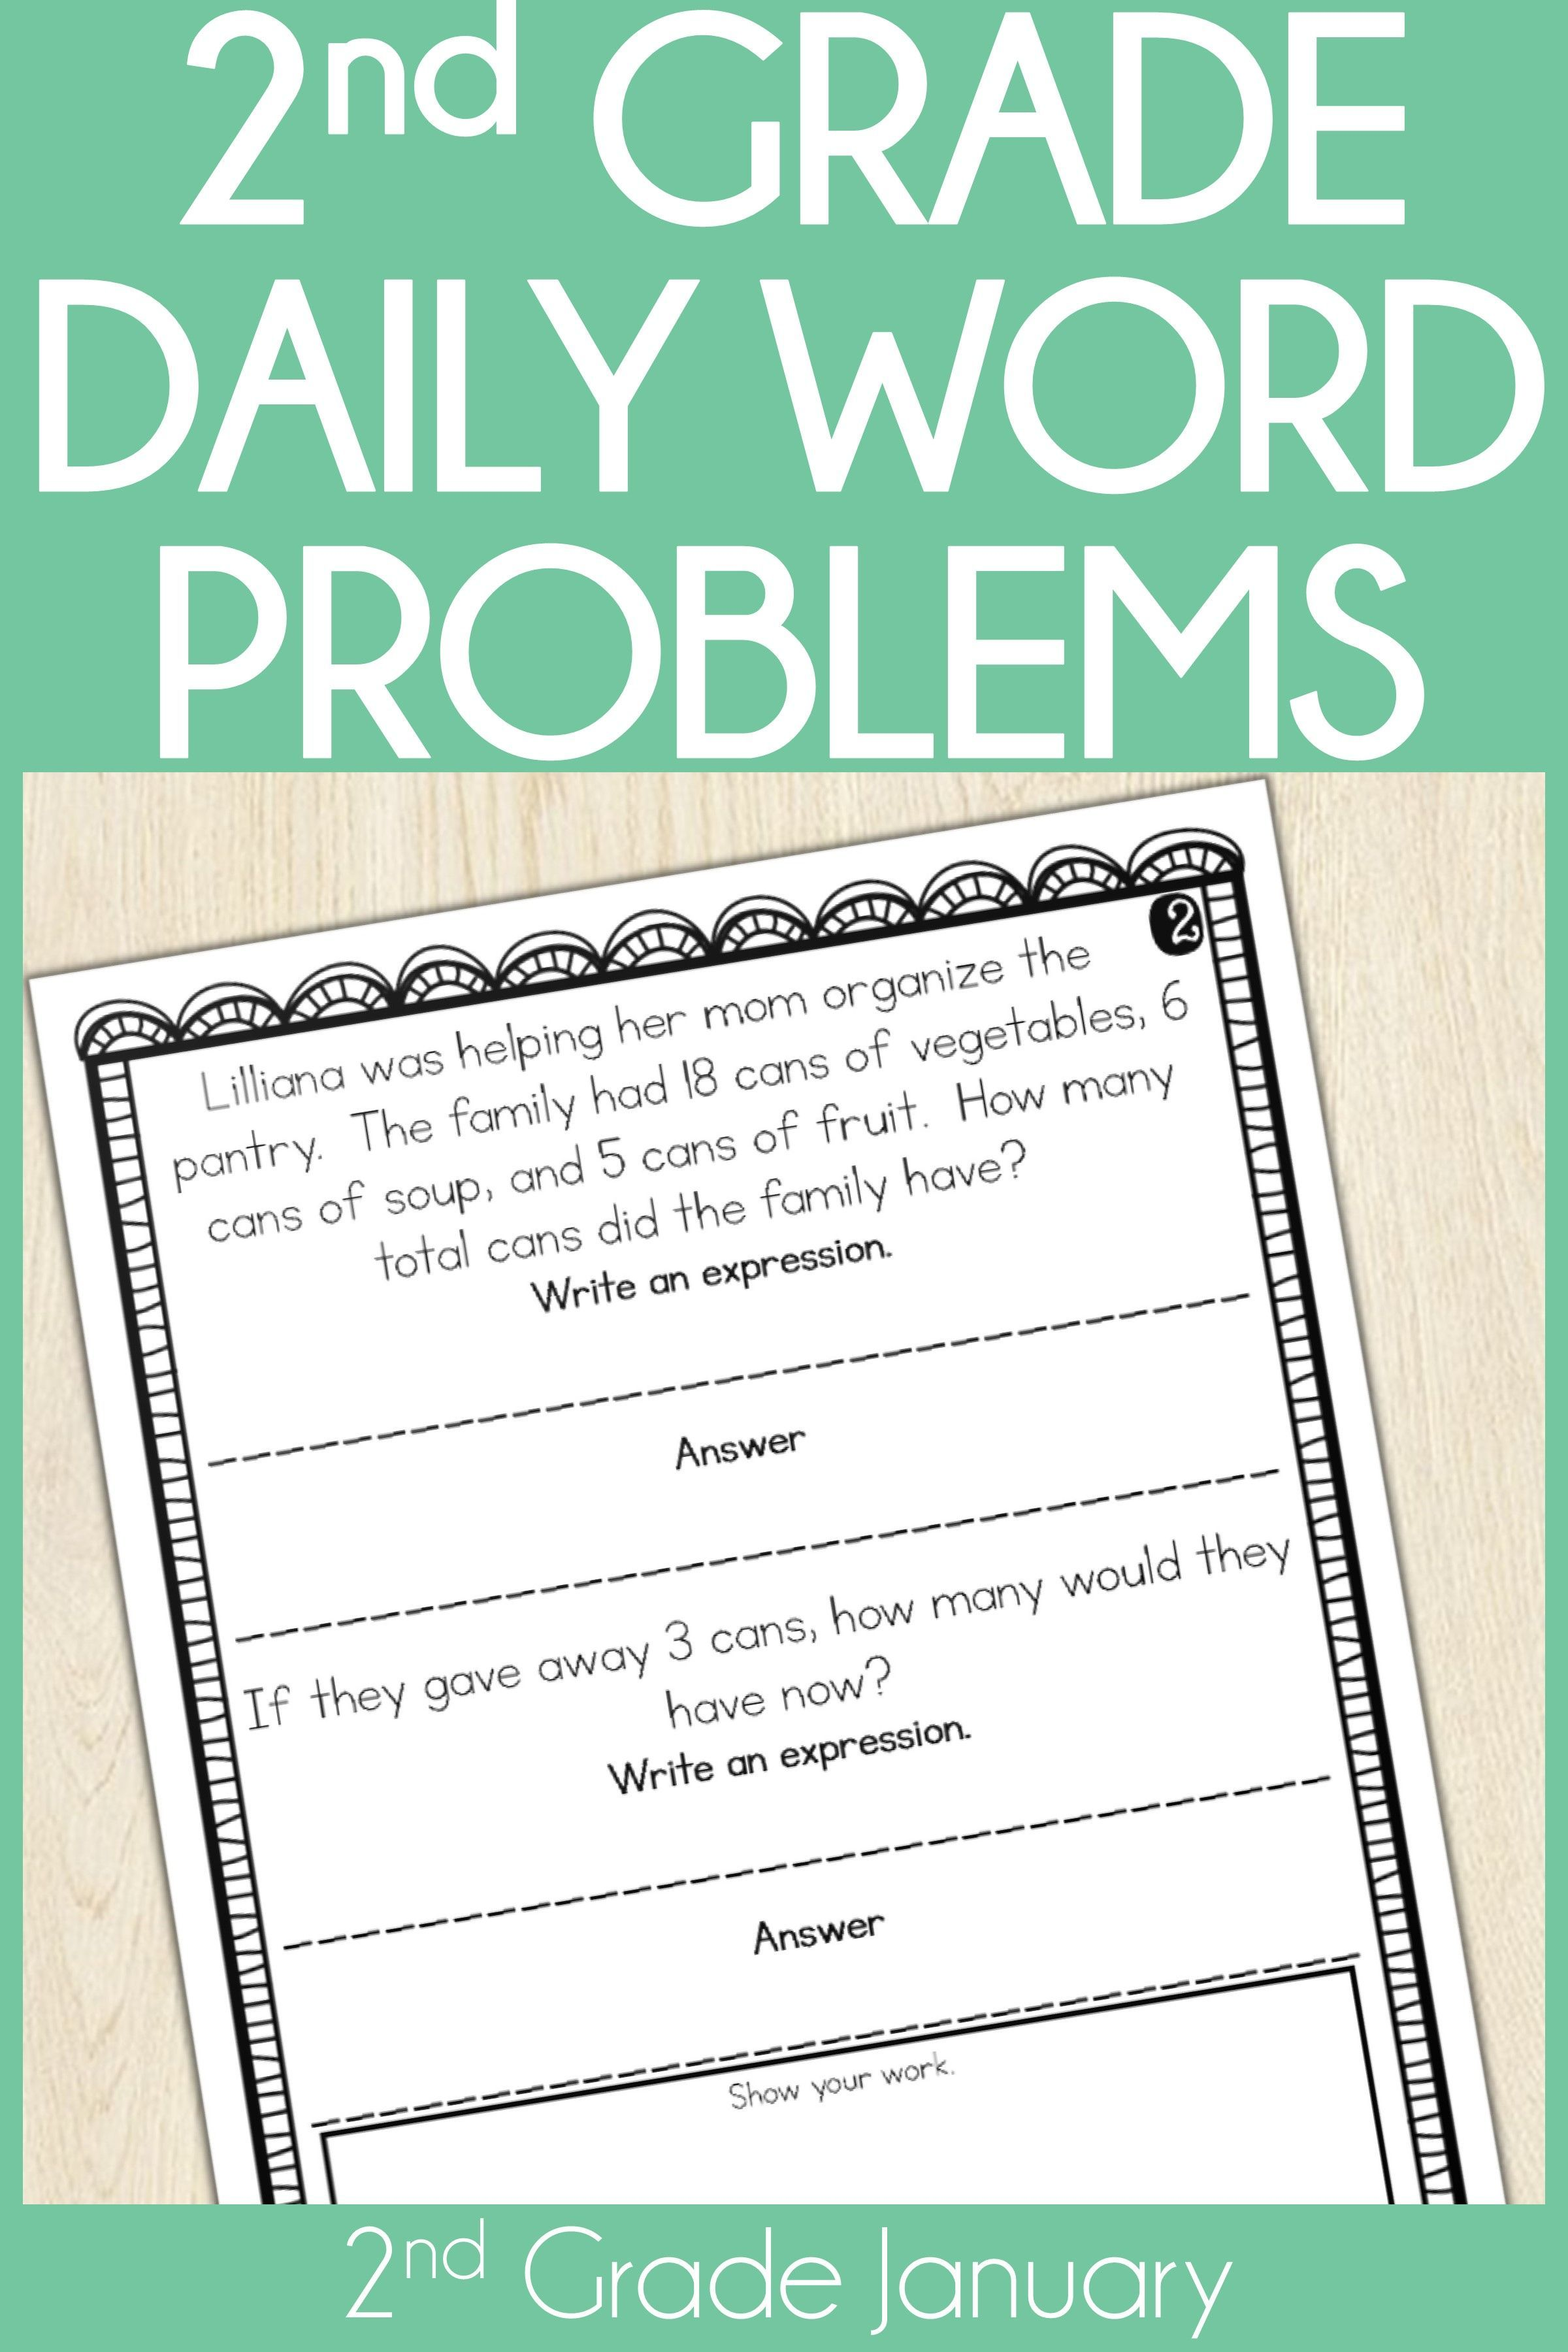 2nd Grade Word Problem Of The Day Story Problems January